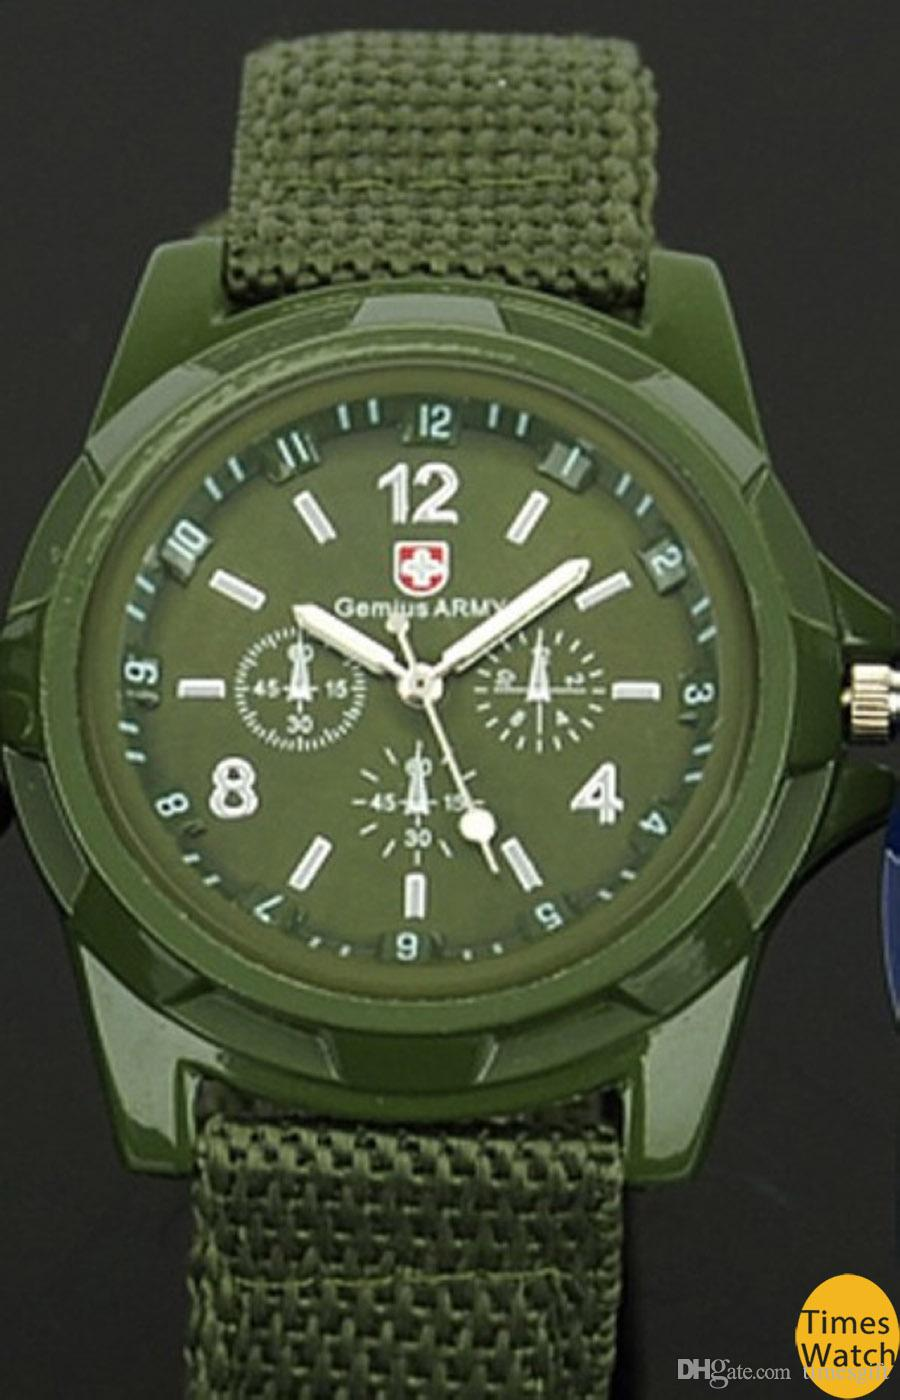 Hot sale Men's Luxury Analog new fashion TRENDY SPORT MILITARY STYLE WRIST WATCH SWISS ARMY quartz watches